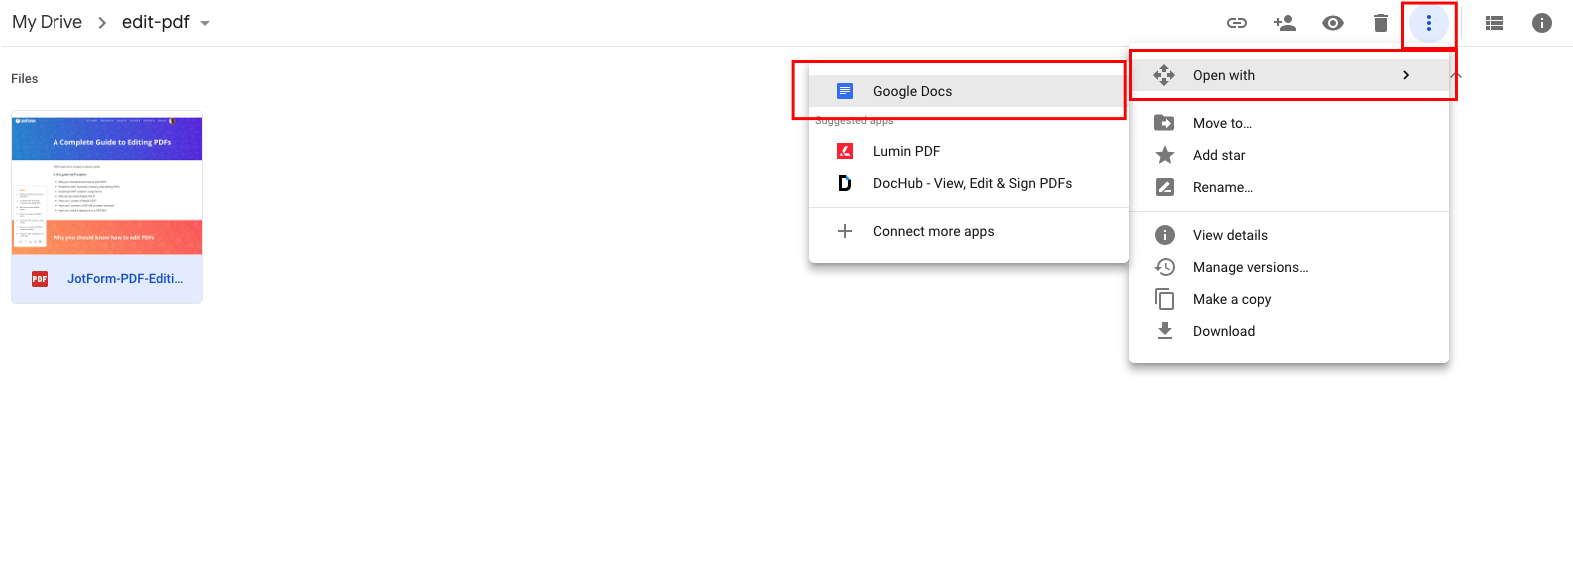 Edit PDF on Google Drive